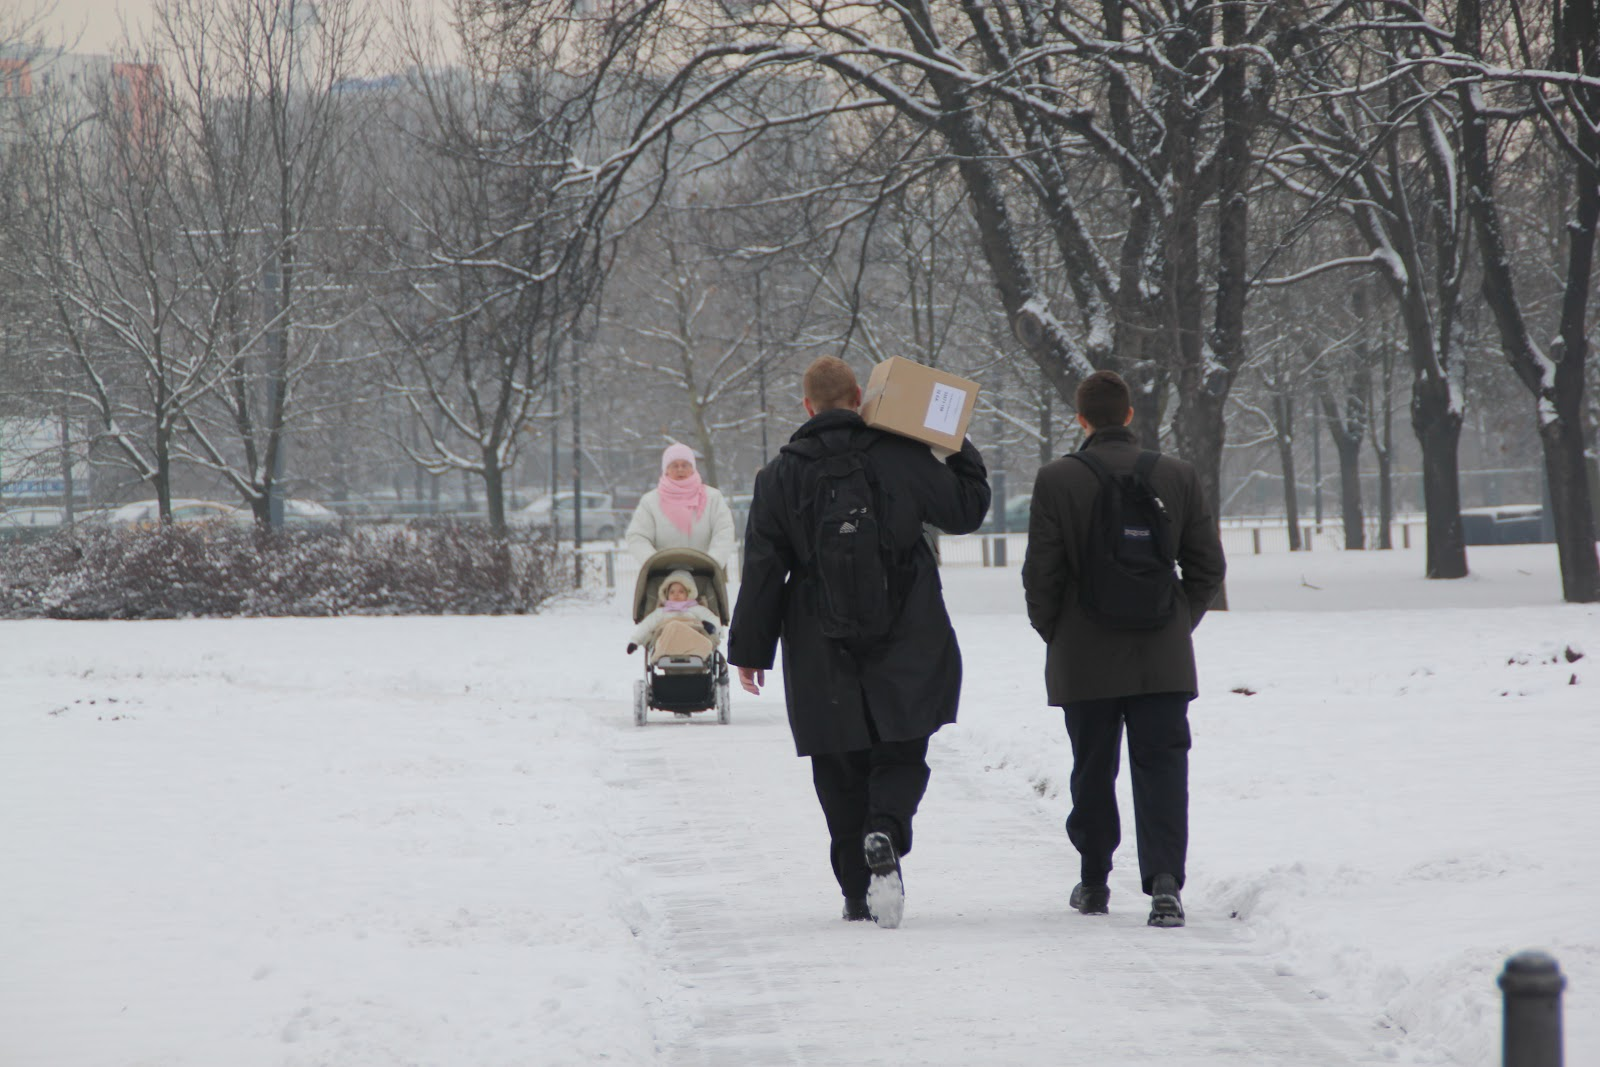 a LDS Missionaries in the snow Latter-day Saint23.JPG